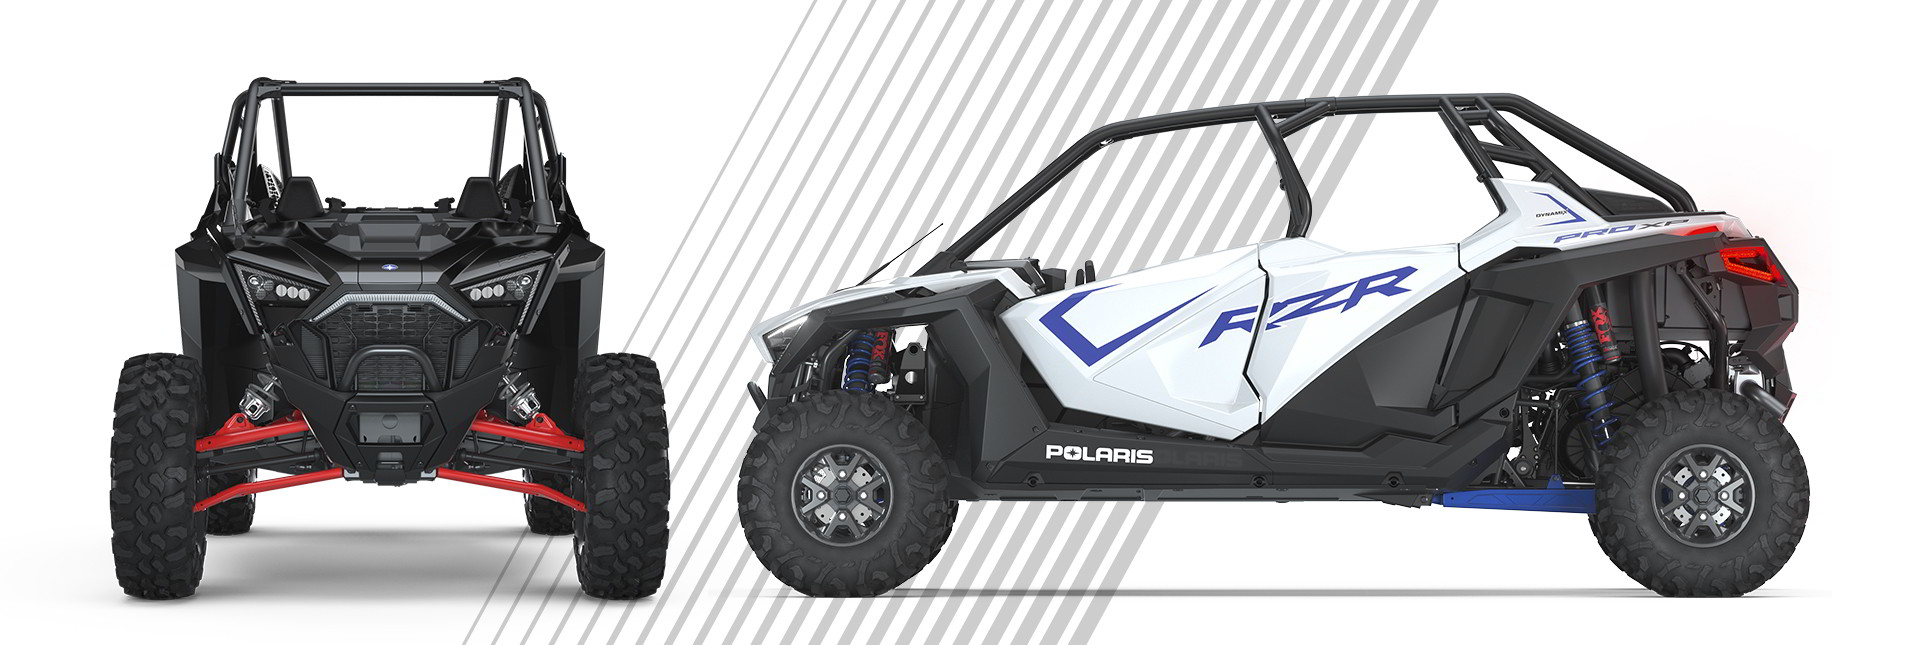 front and side view of RZR Pro